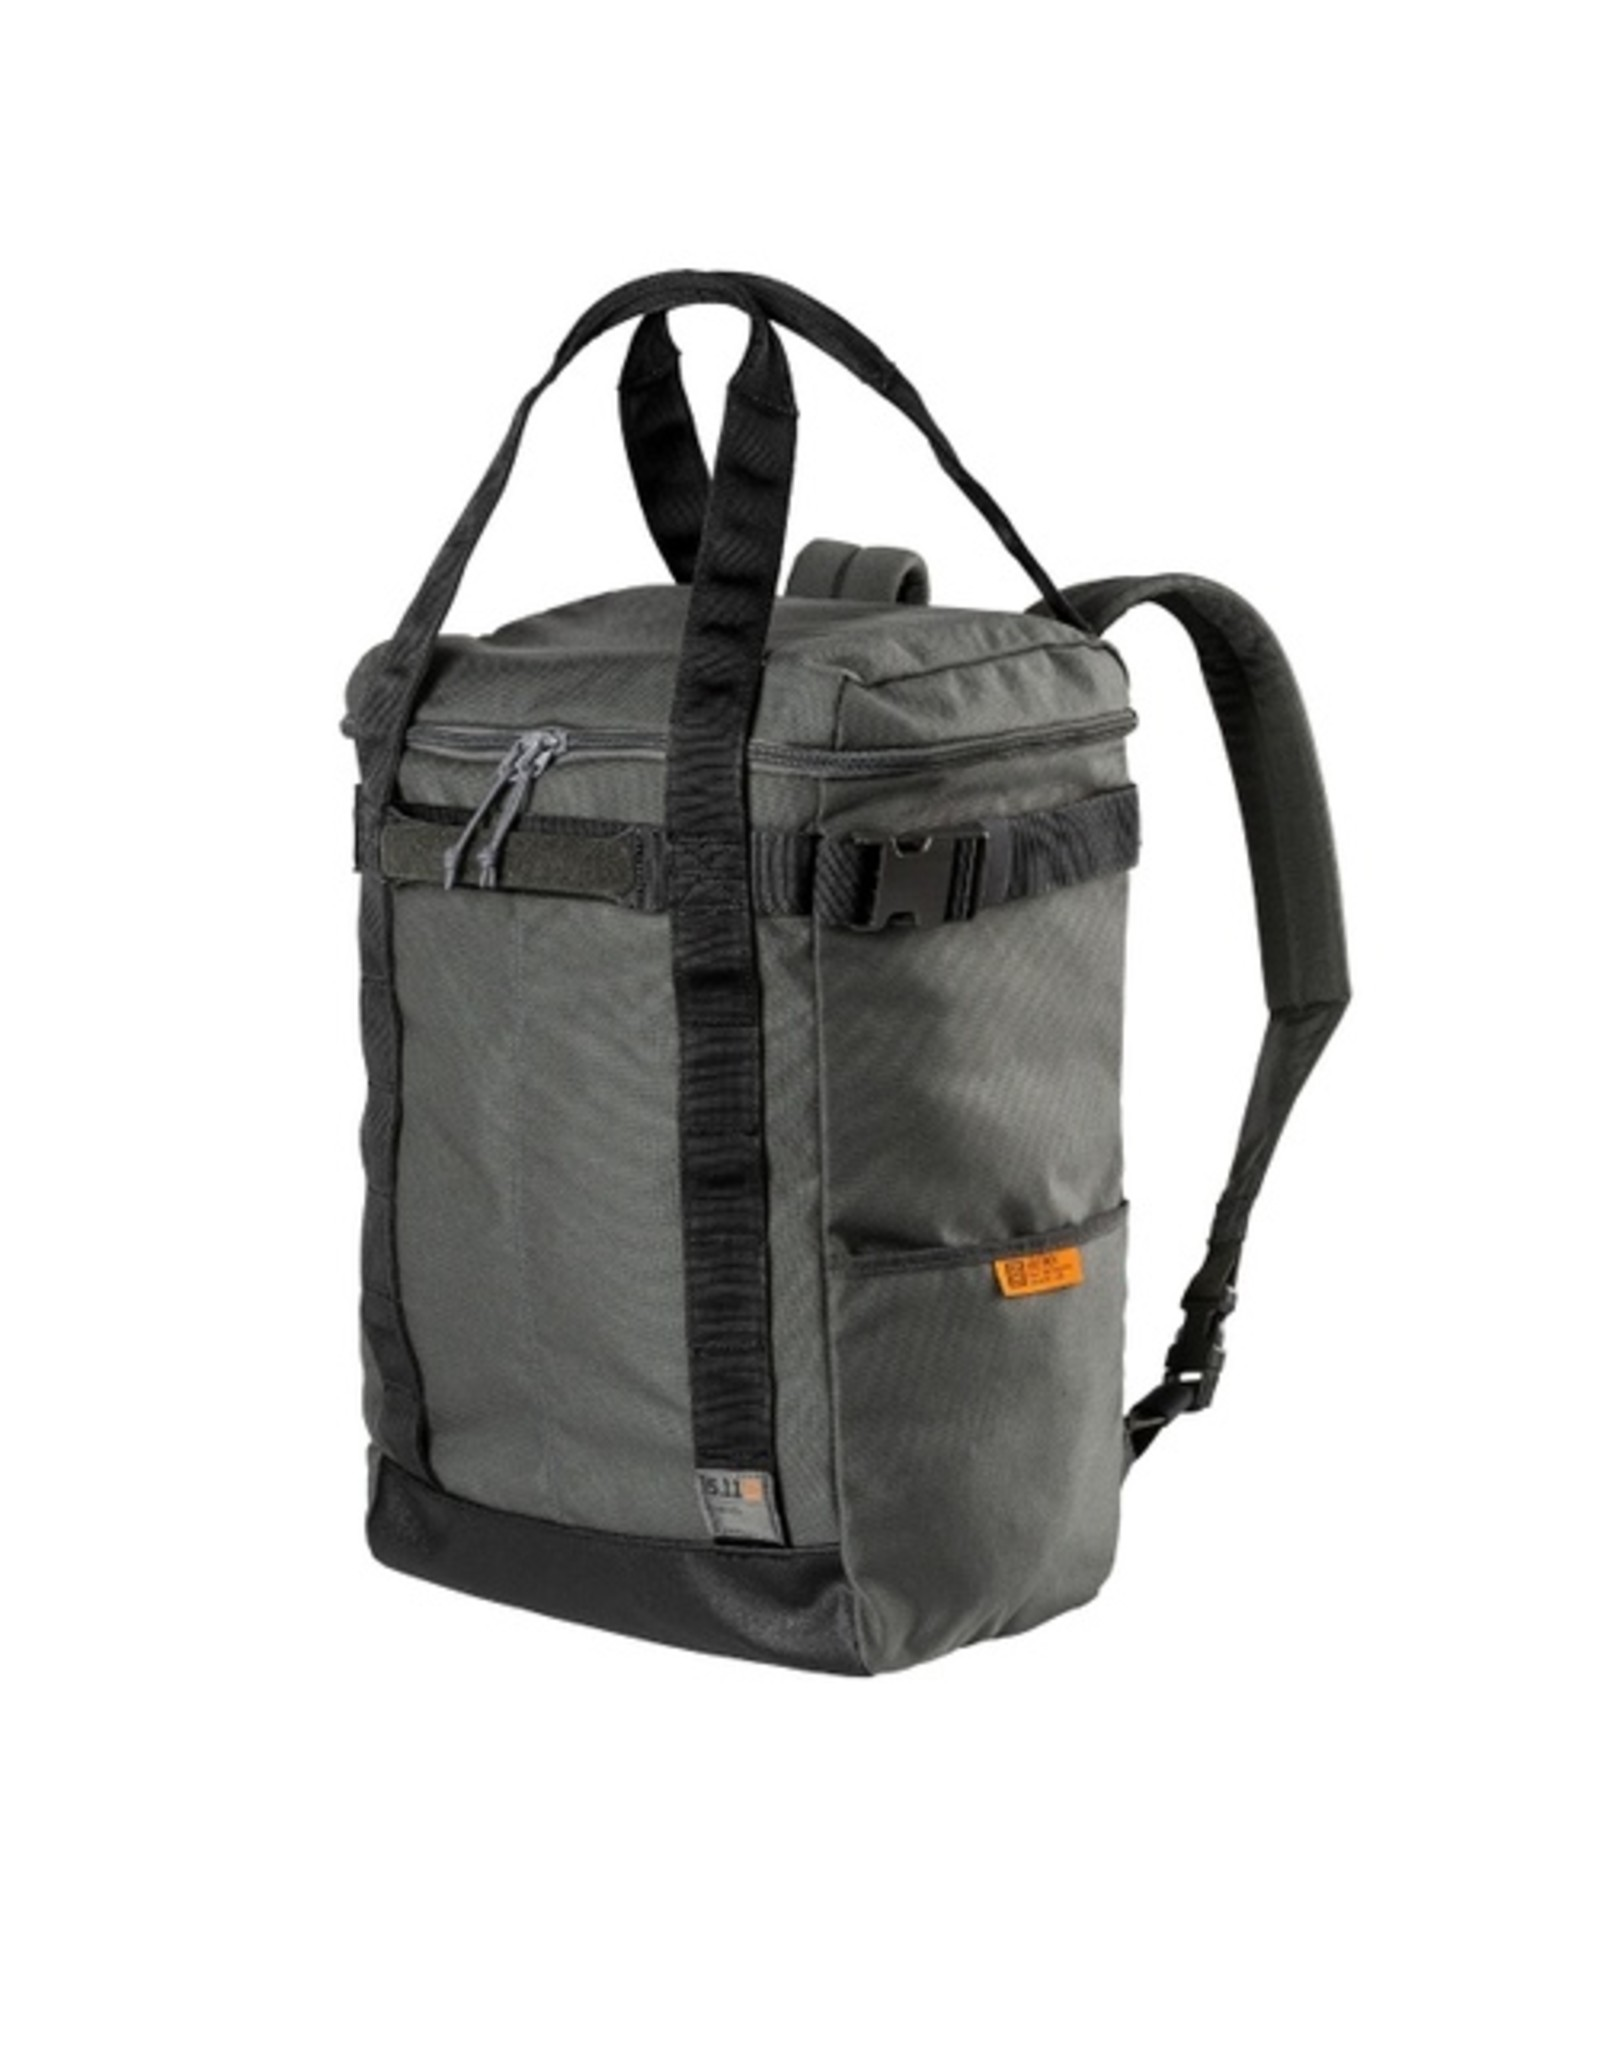 5.11 LOAD READY HAUL PACK 35L - ONLINE ONLY